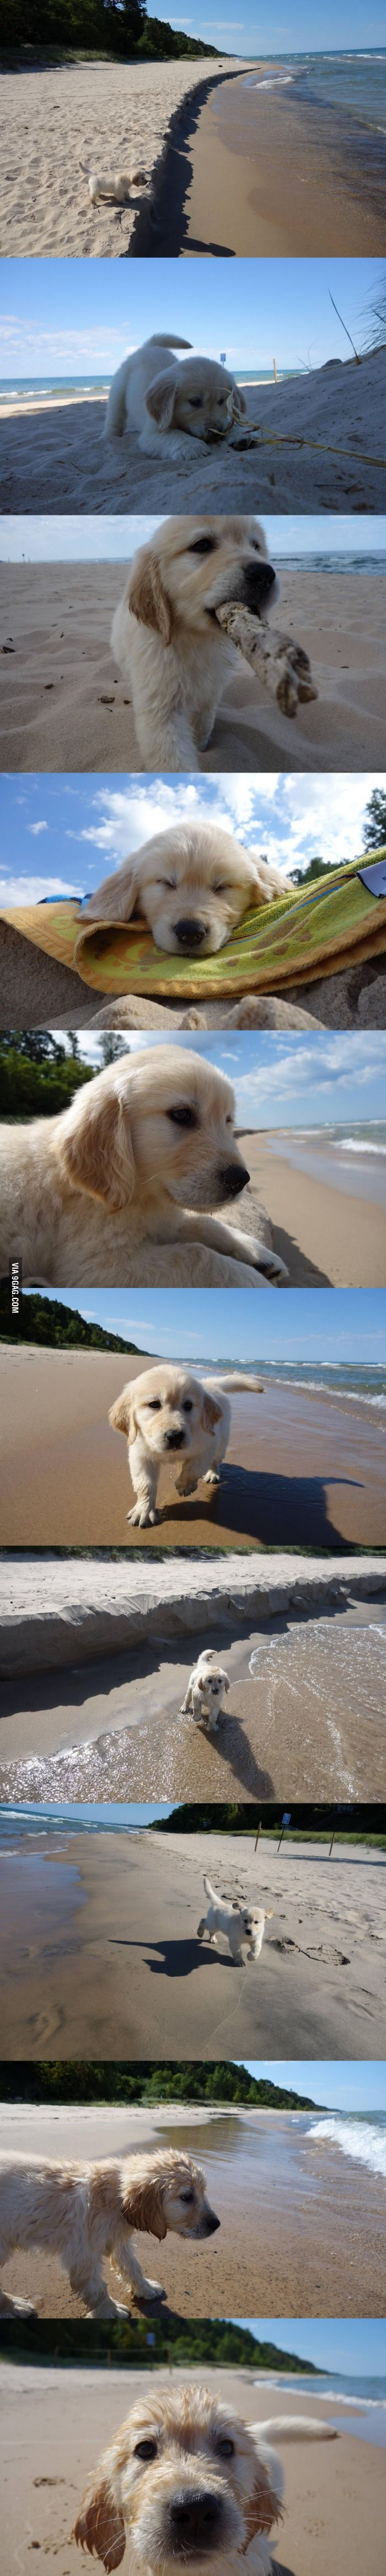 Beach baby, perfect! :) I would take my puppy on a walk at the beach all the time!